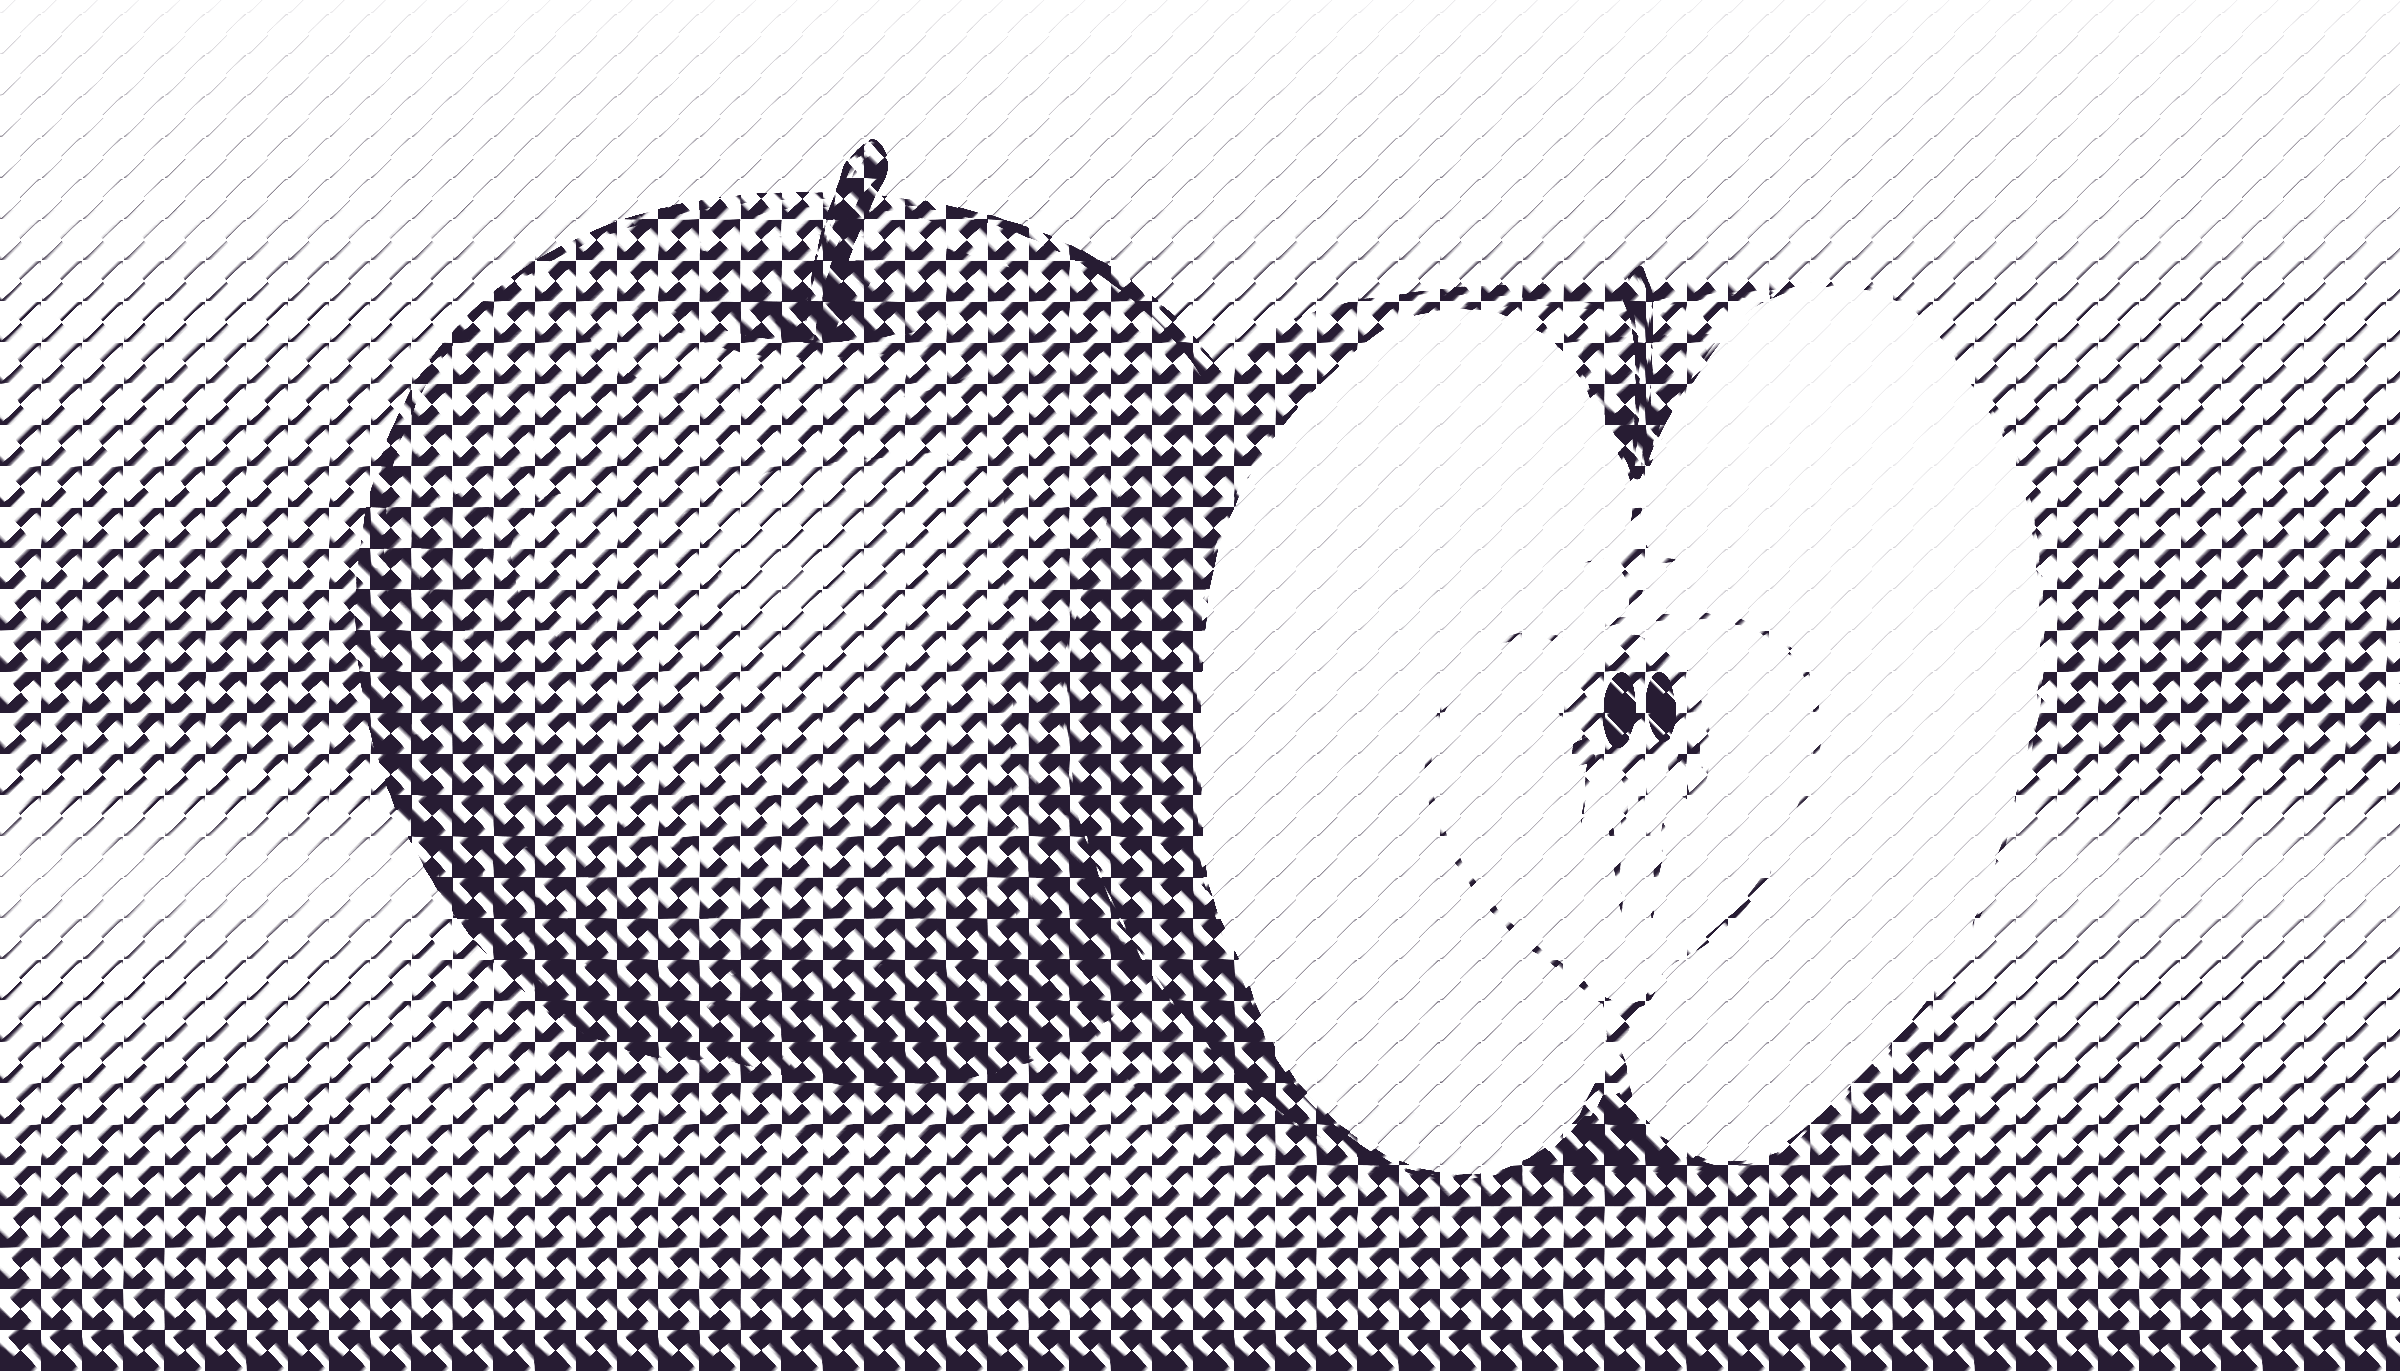 halftone apple 15 by Lazur URH